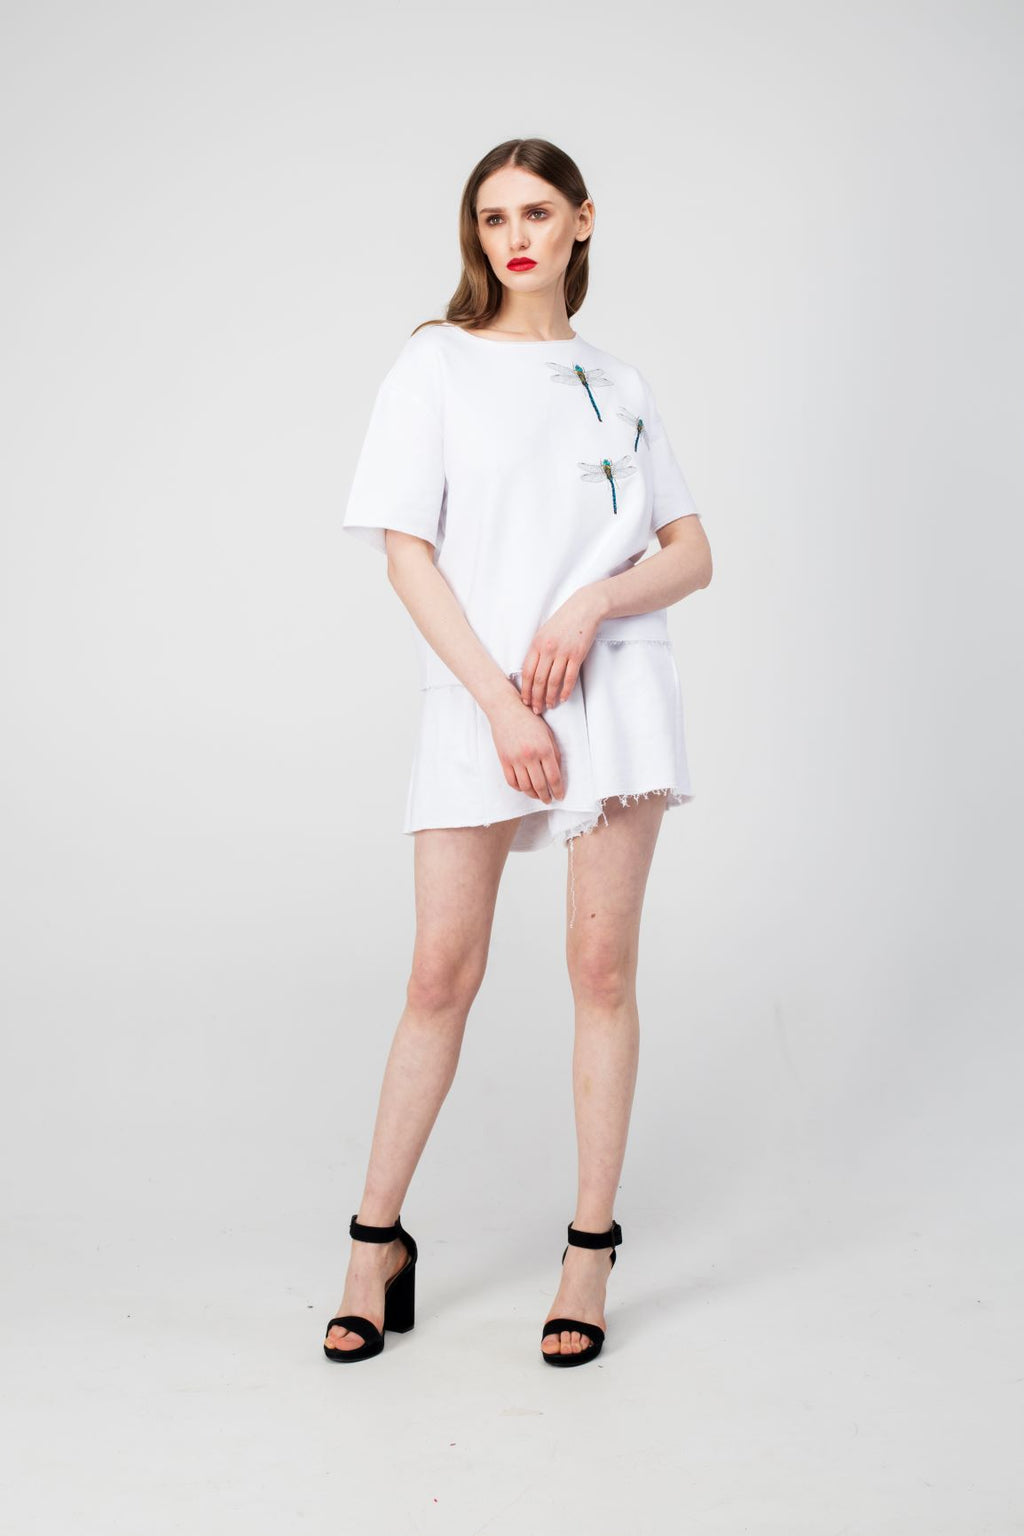 White Embroidered Dragonfly Girls Set - LAZY FRANCIS - Shop in store at 406 Kings Road, Chelsea, London or shop online at www.lazyfrancis.com